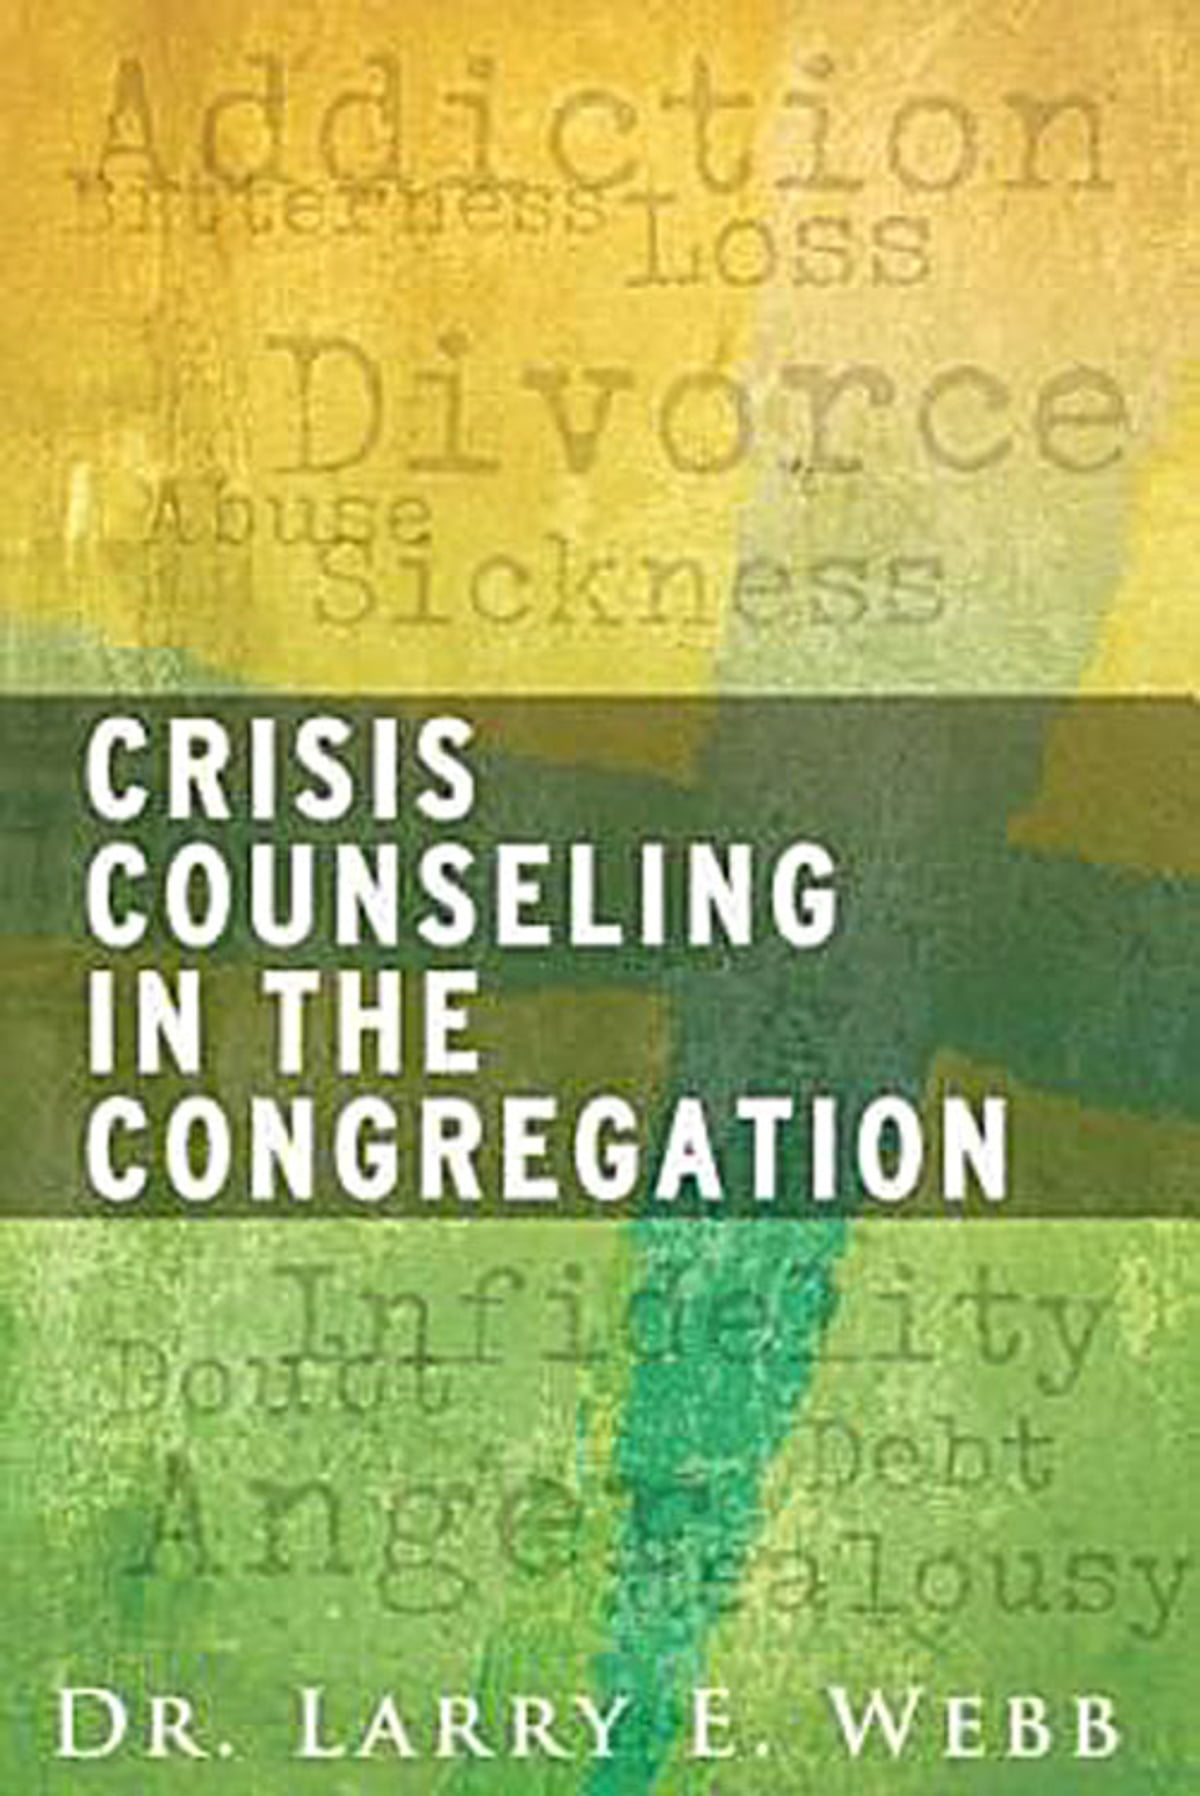 Crisis counseling in the congregation ebook by dr larry e webb crisis counseling in the congregation ebook by dr larry e webb 9781426753855 rakuten kobo fandeluxe Epub